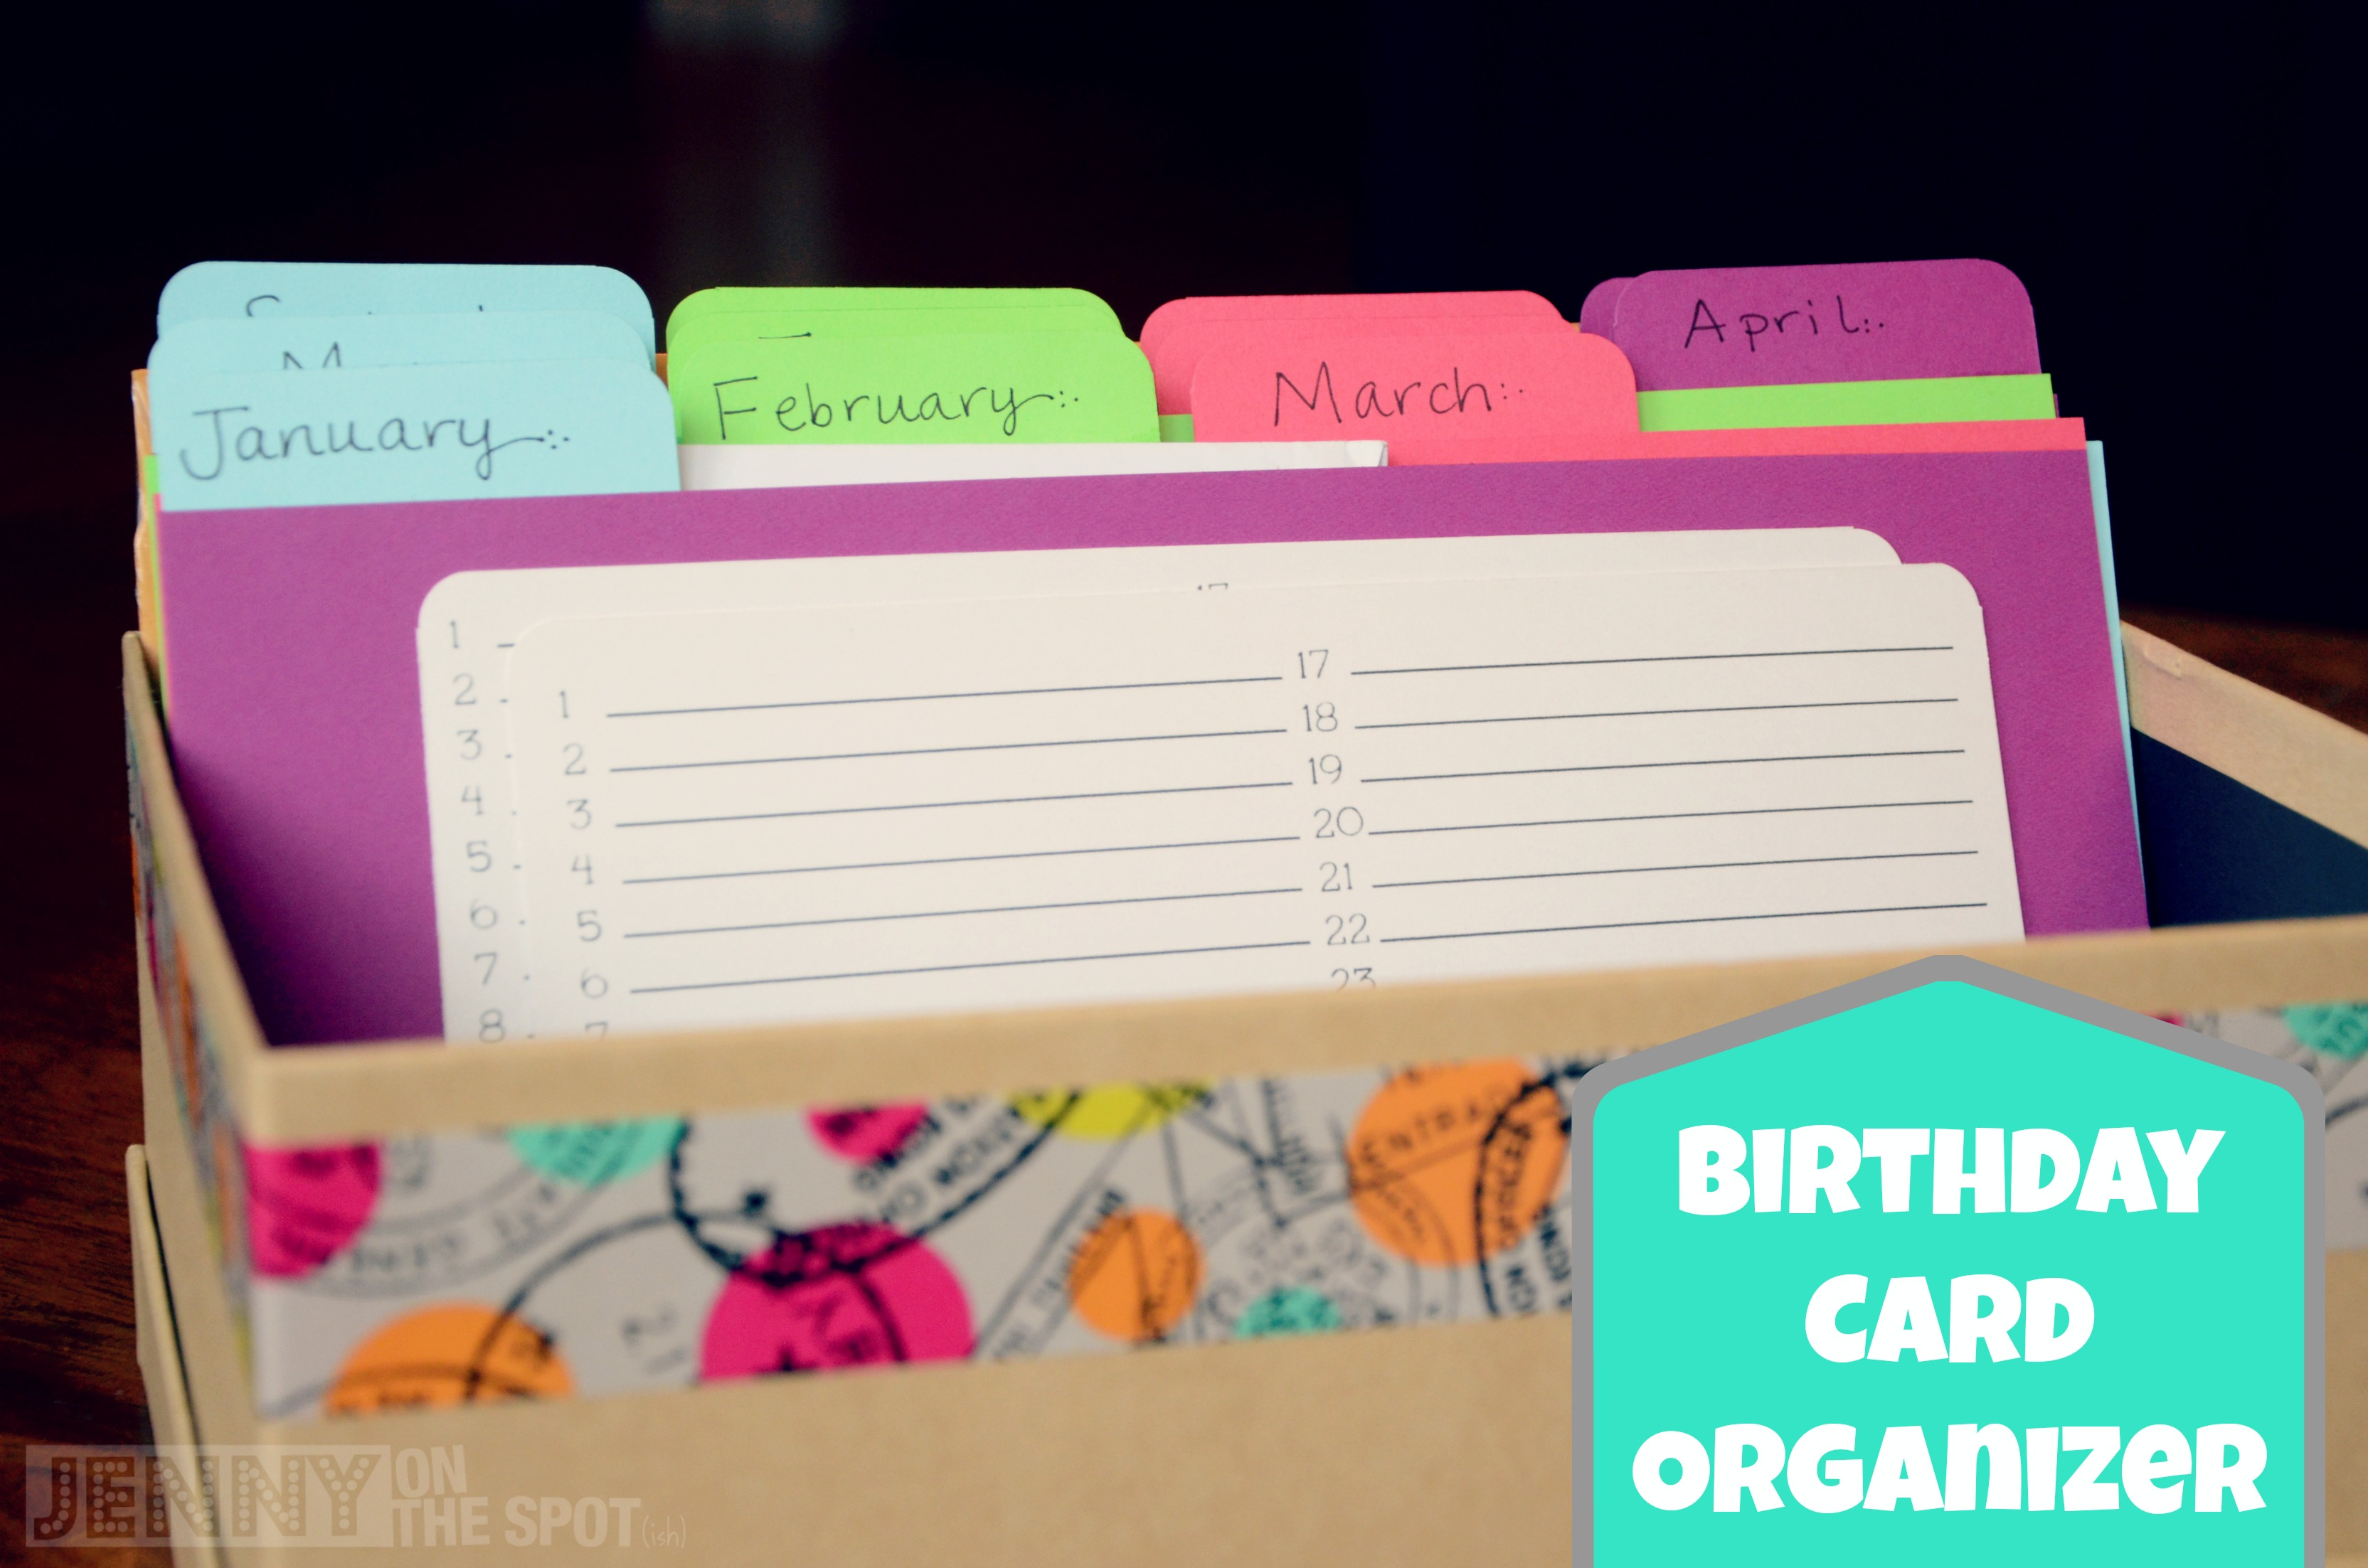 How To Make a Birthday Card Organizer and Card Box – Birthday Cards in a Box